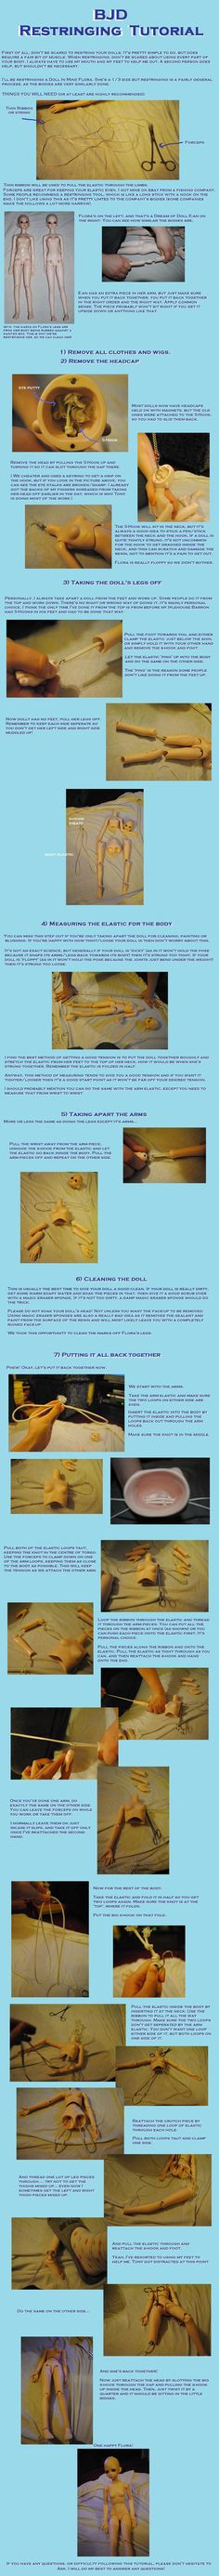 BJD Restringing Tutorial by ~kagen-no-tsuki on deviantART